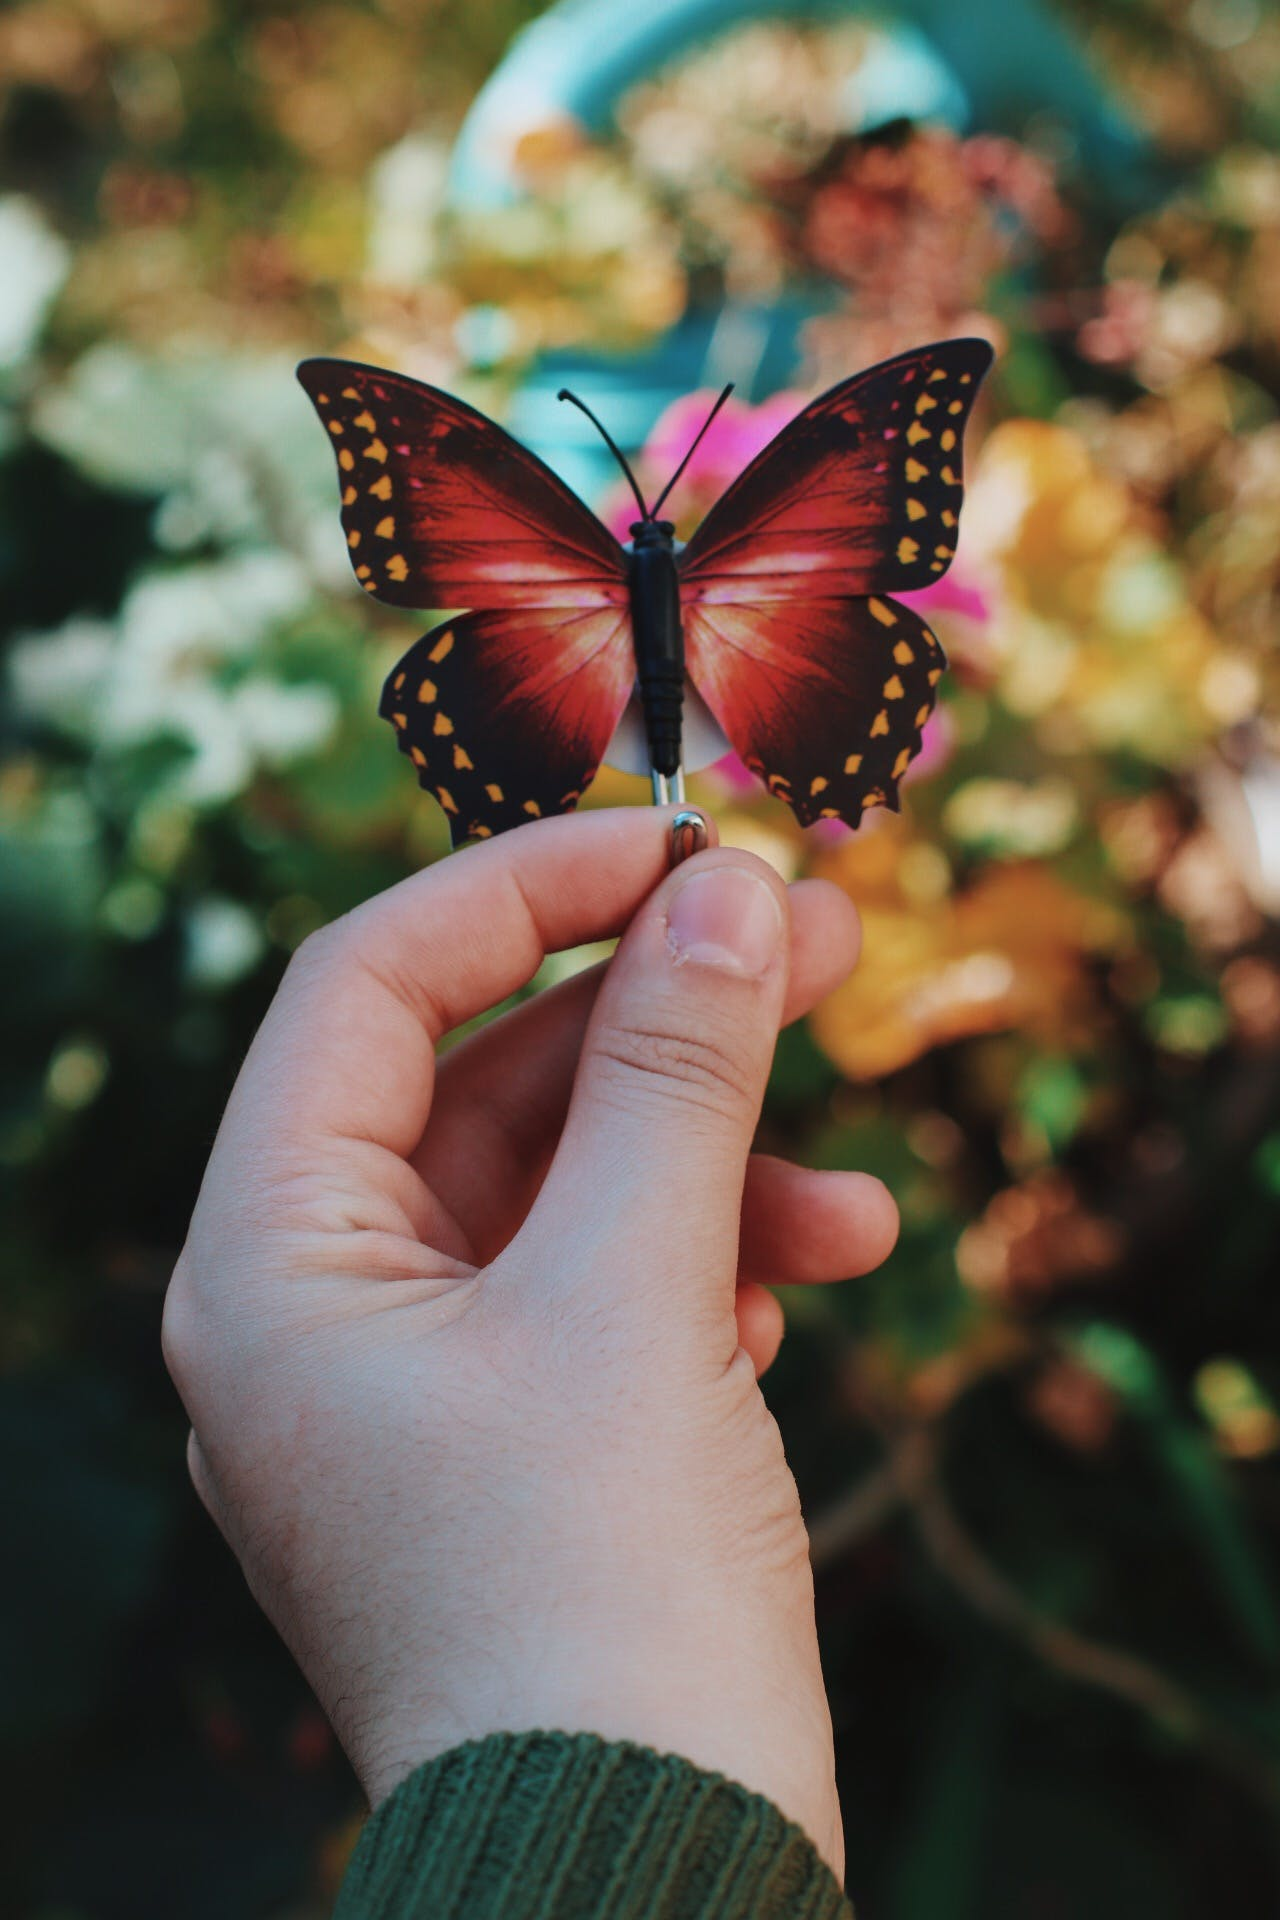 Person Holding Red and Black Butterfly Decor